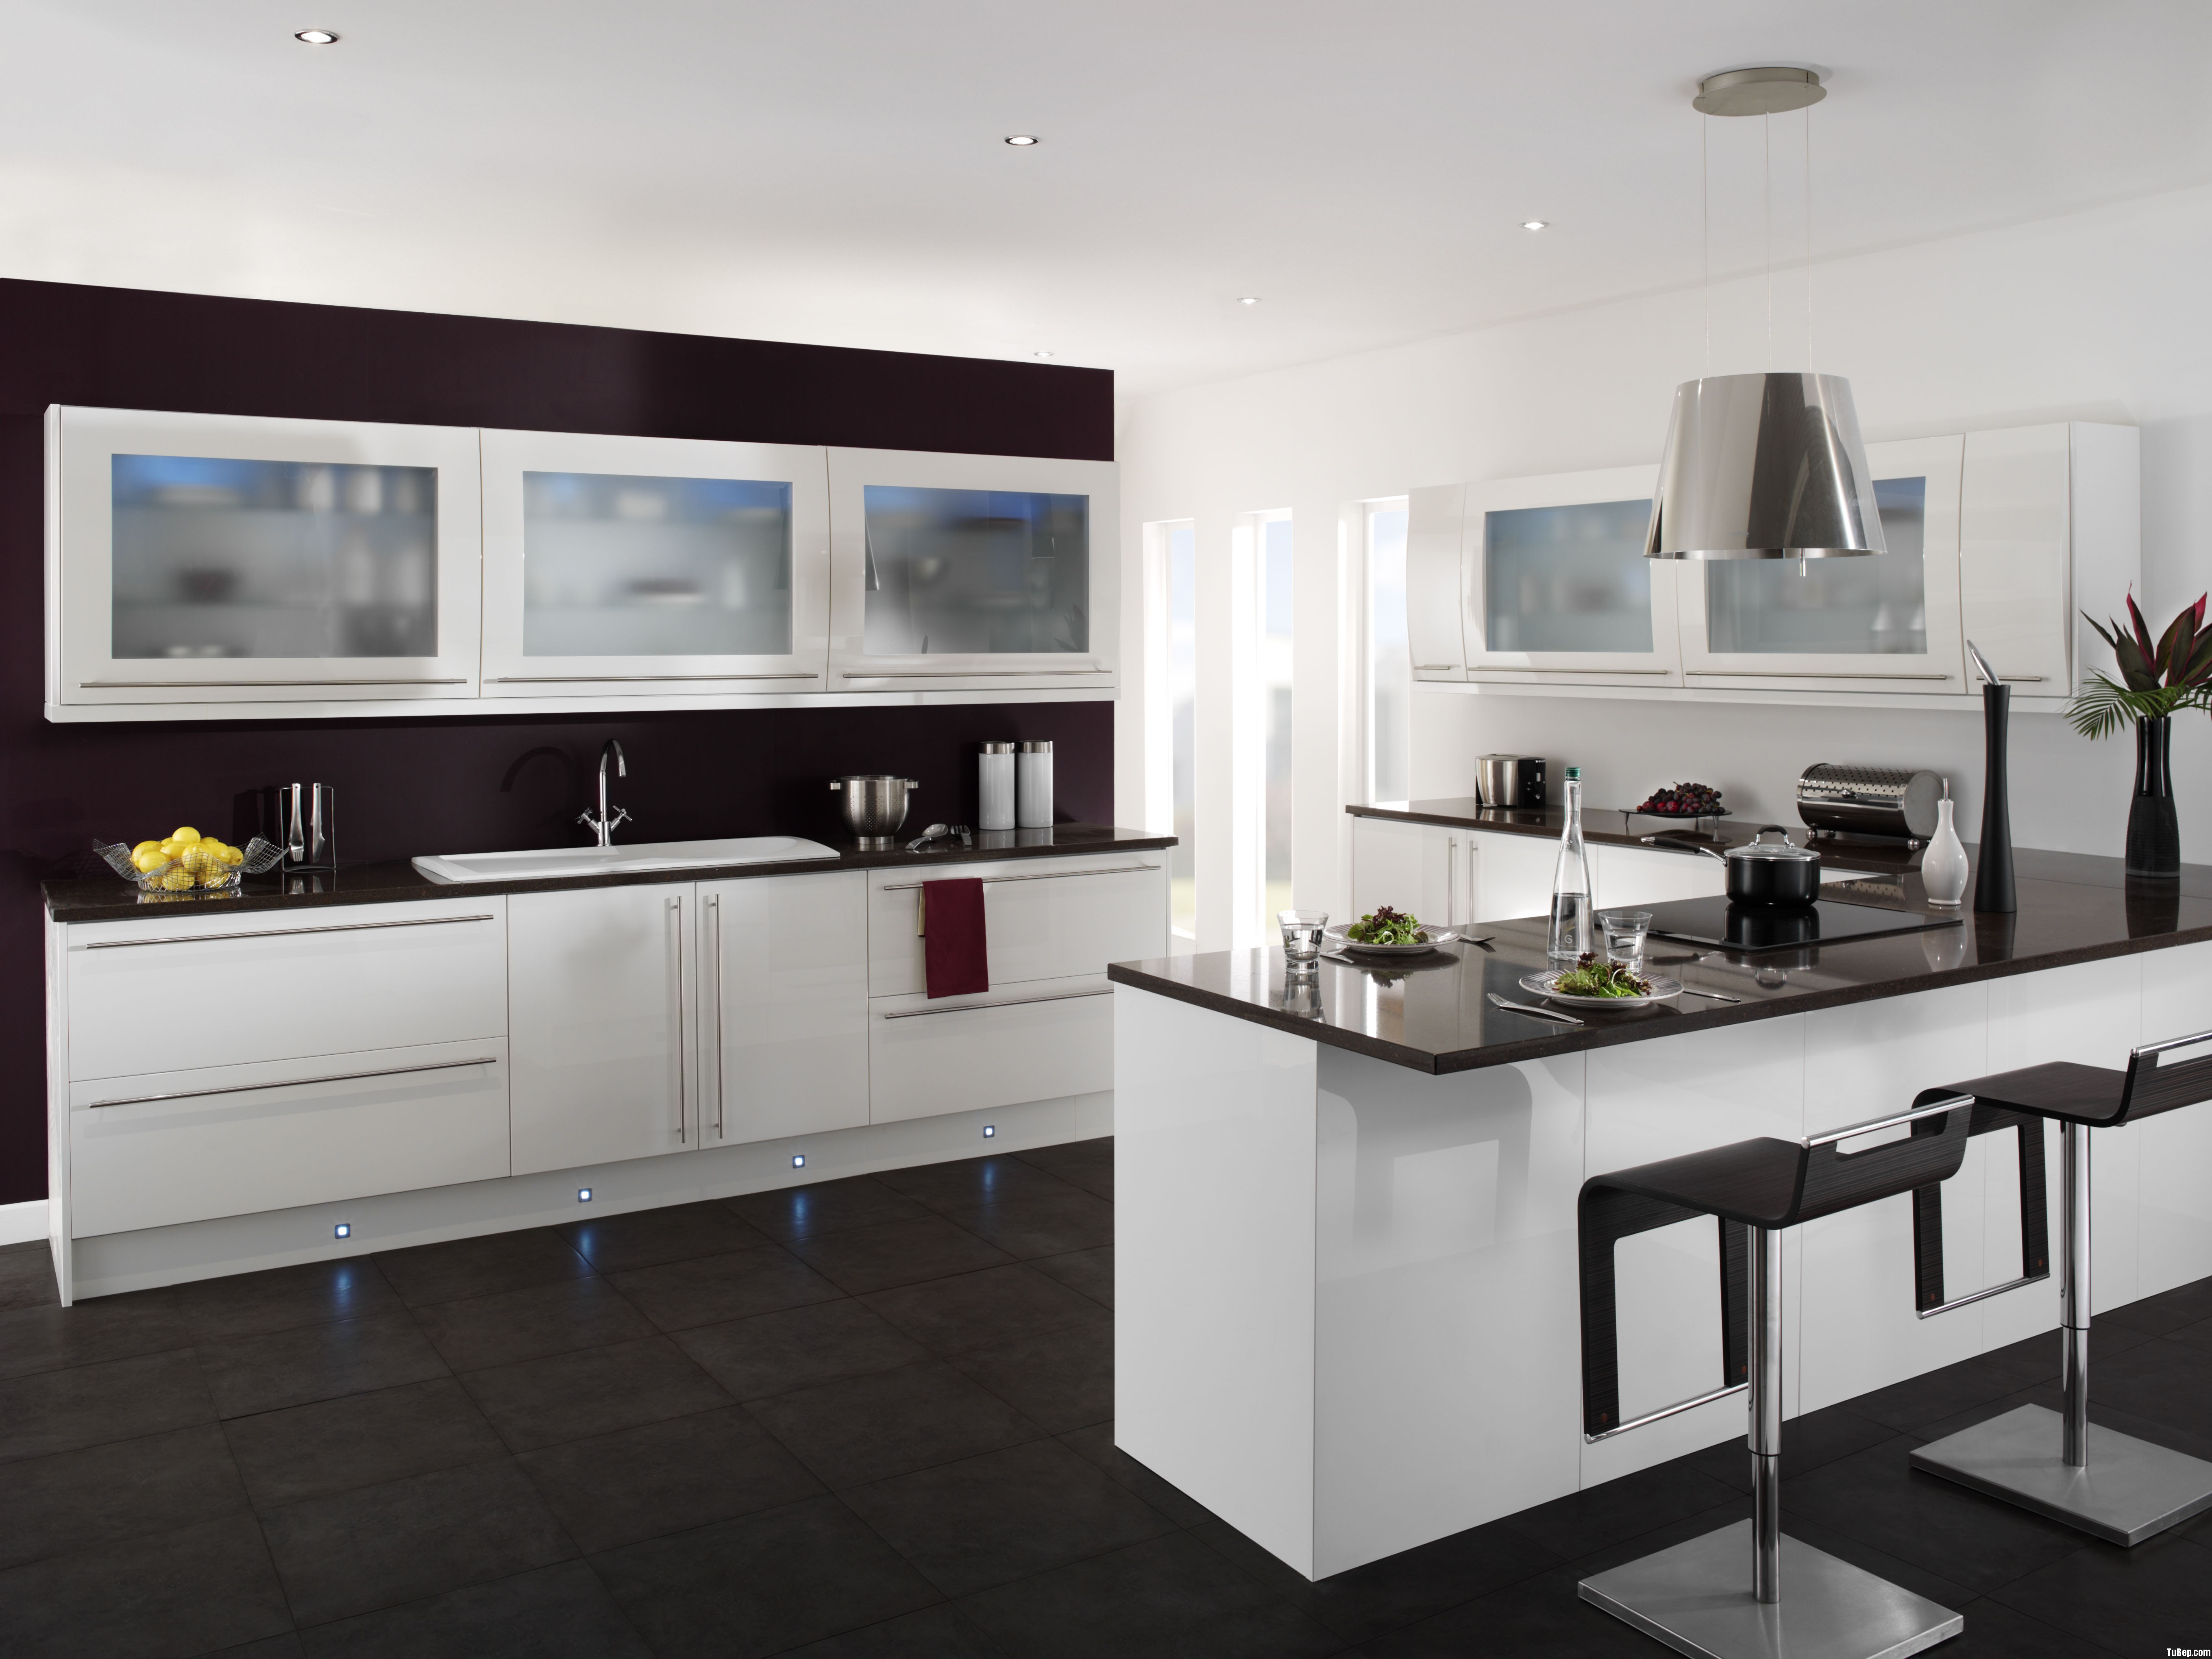 decoration-kitchen-beautiful-white-hardwood-kitchen-cabinet-system-with-frosted-glass-door-and-cool-black-acrylic-countertop-as-well-as-white-porcelain-kitchen-washbasin-in-modern-black-and-white-kit